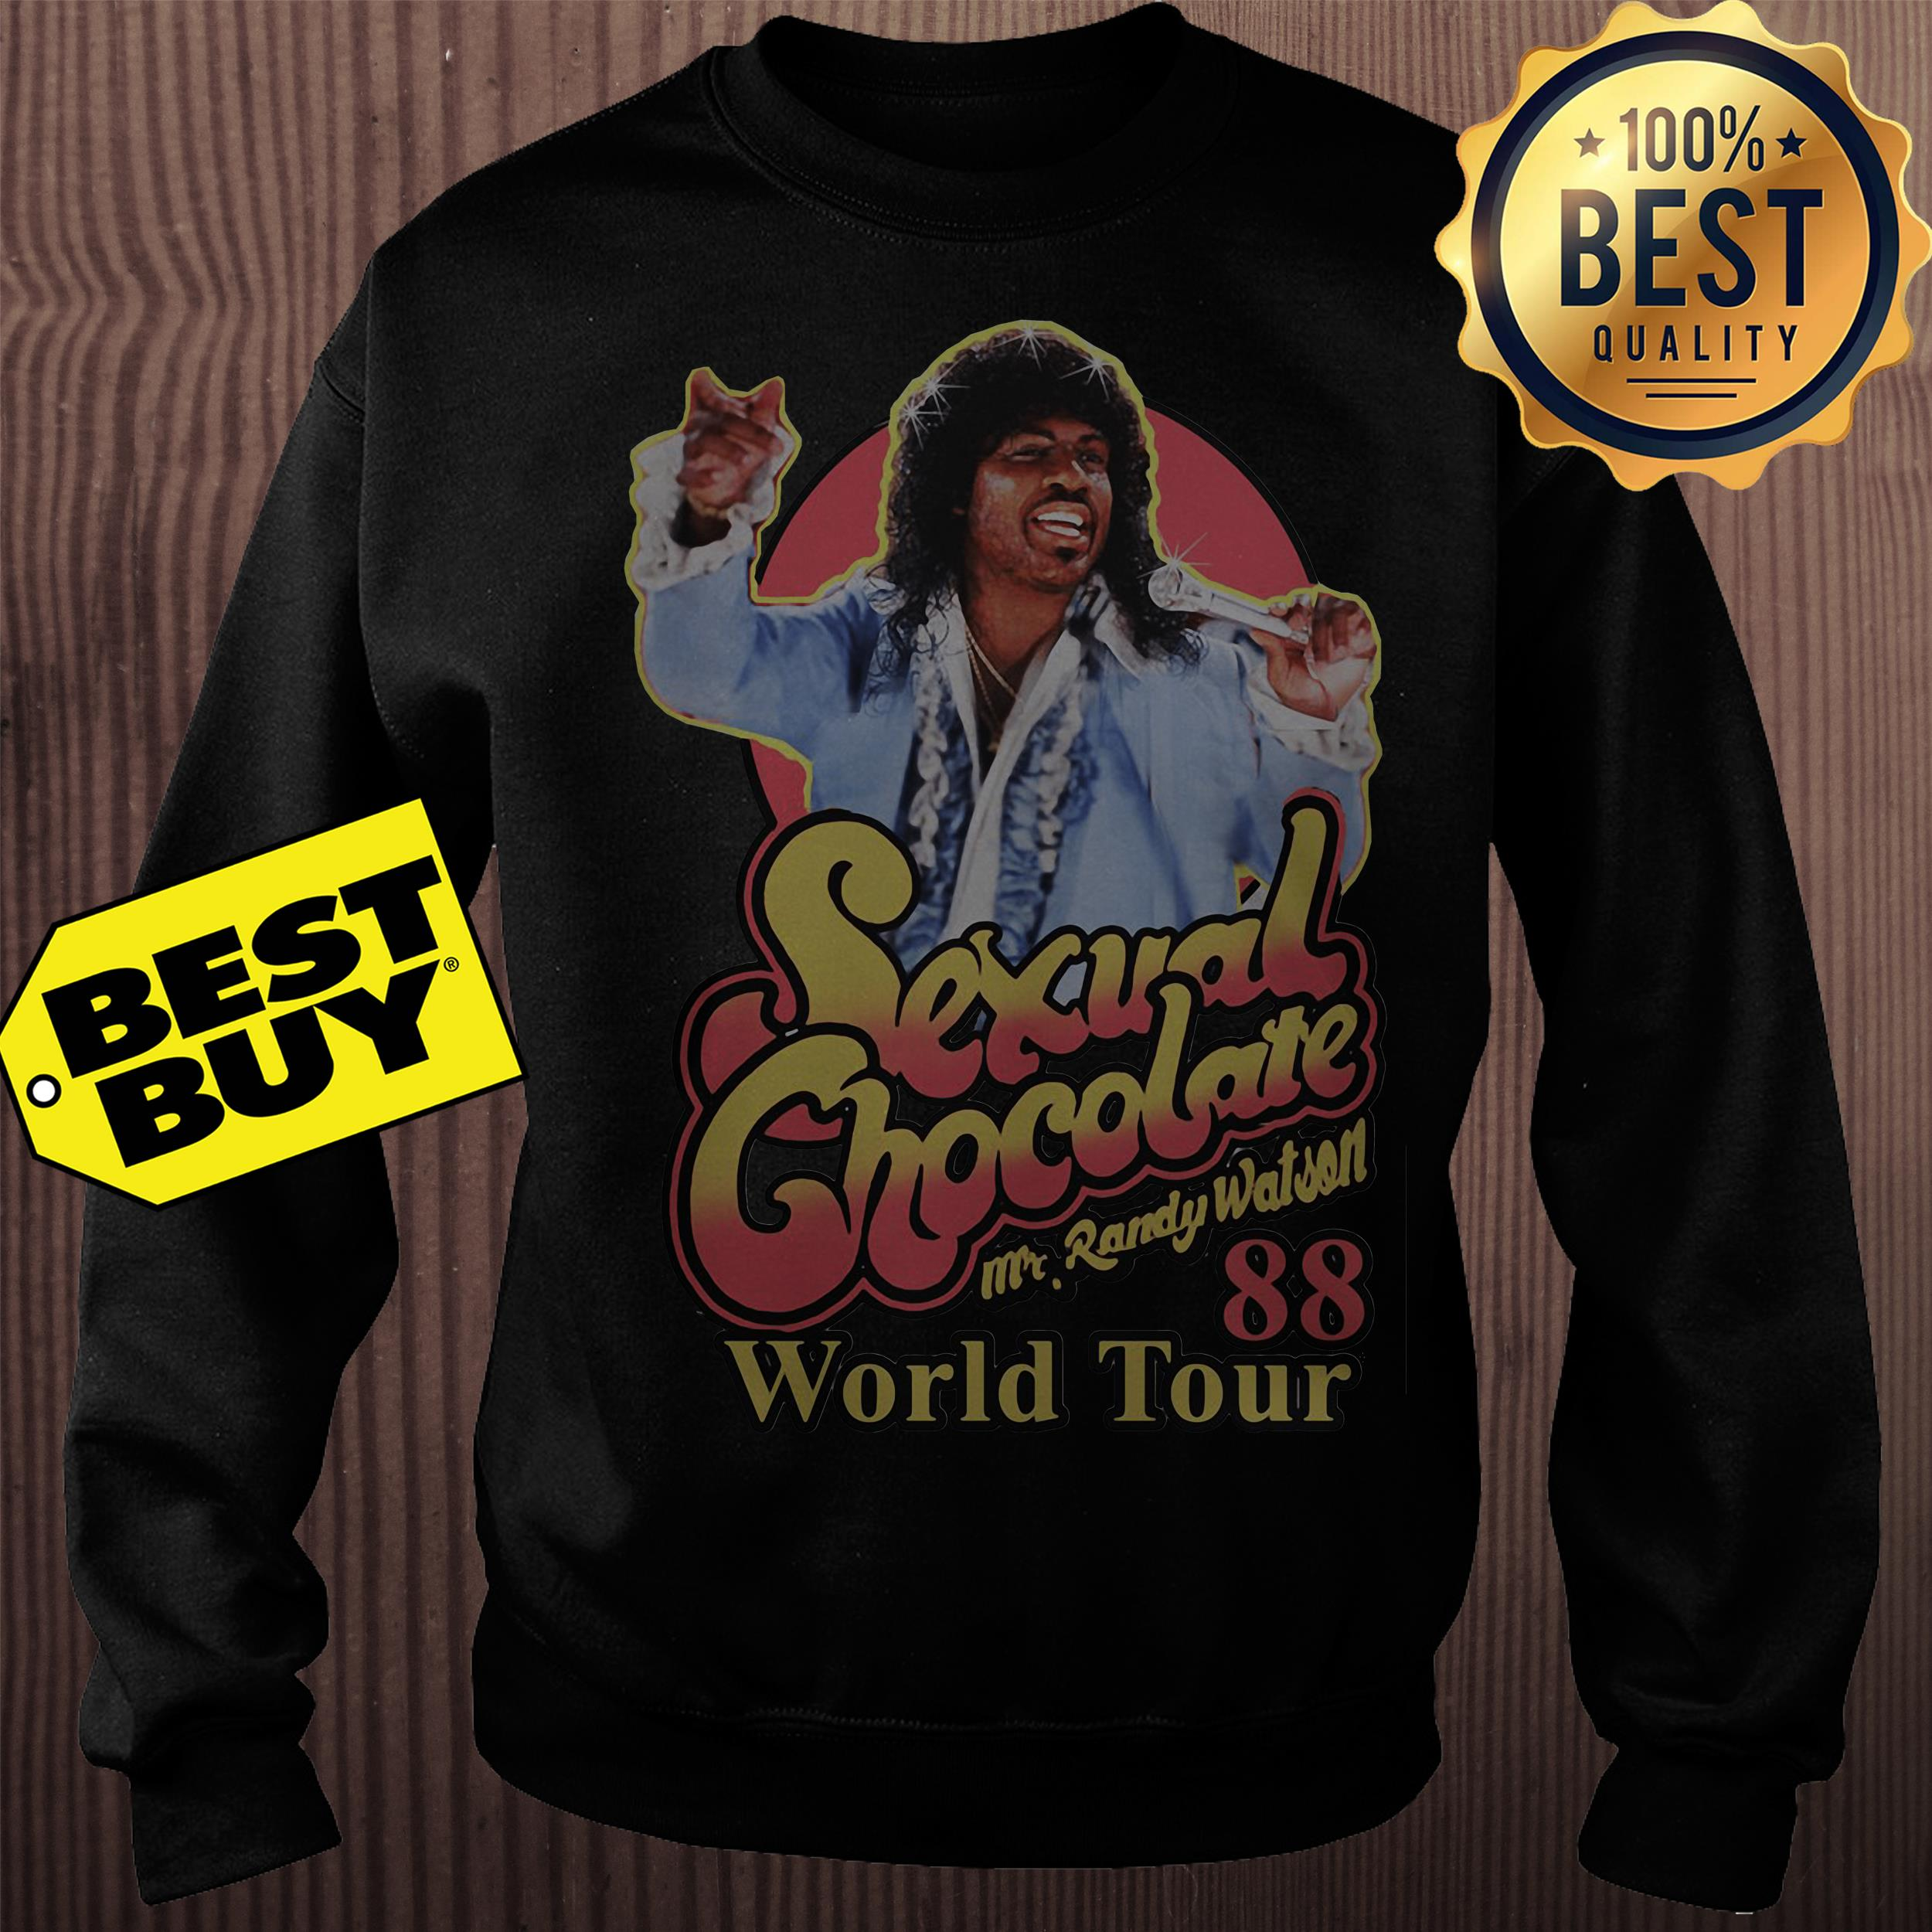 Sexual chocolate Mr.Randy Watson 88 world tour sweatshirt